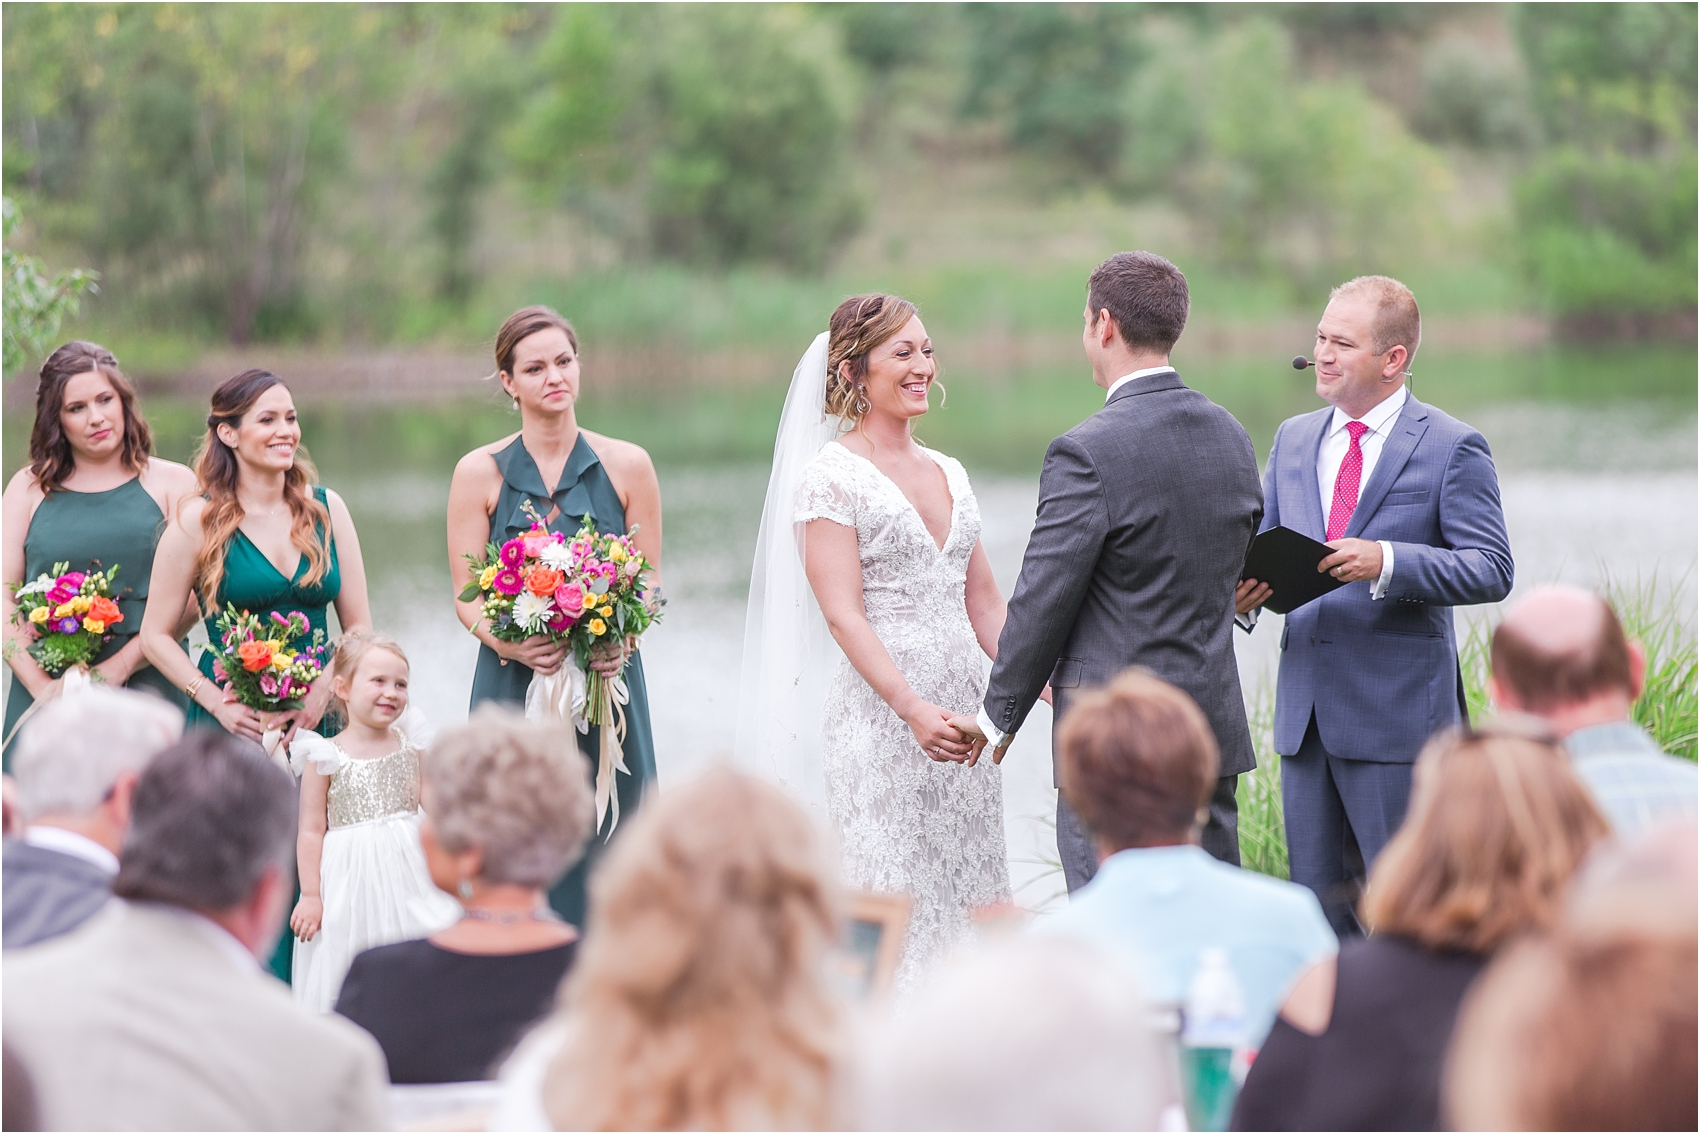 romantic-intimate-backyard-wedding-photos-at-private-estate-in-ann-arbor-mi-by-courtney-carolyn-photography_0095.jpg